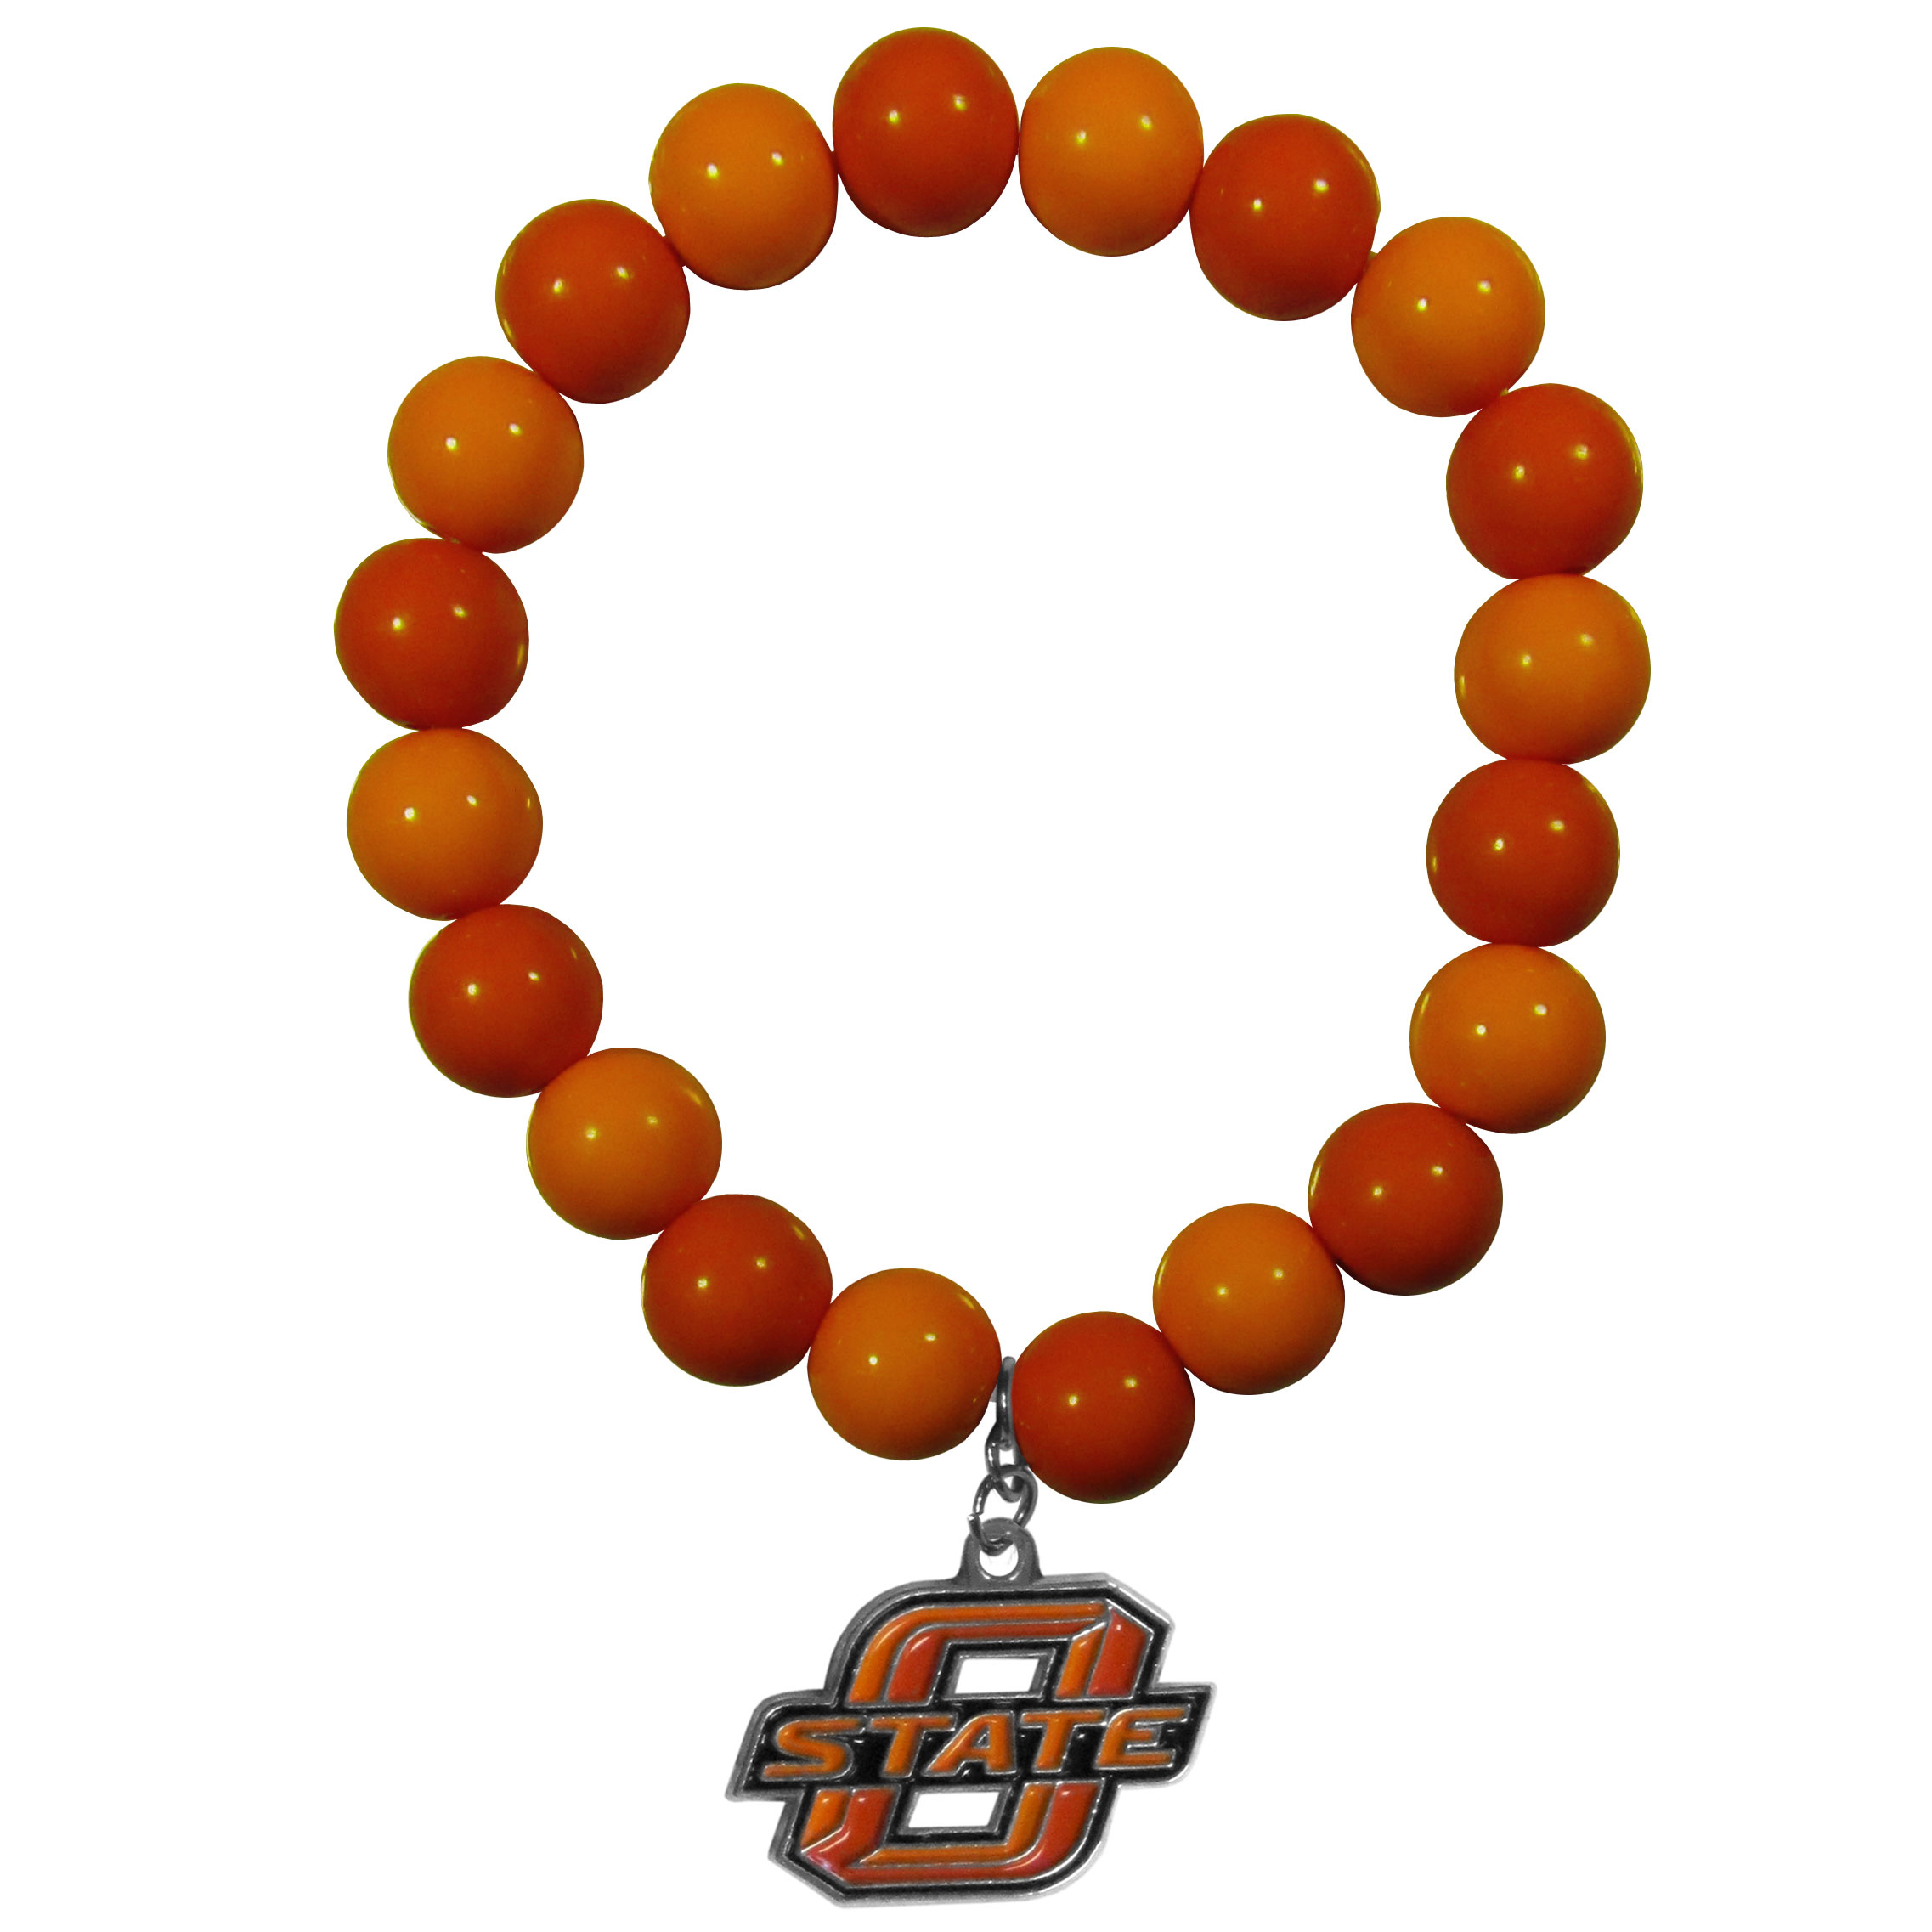 Oklahoma St. Cowboys Fan Bead Bracelet - Flash your Oklahoma St. Cowboys spirit with this bright stretch bracelet. This new bracelet features multicolored team beads on stretch cord with a nickel-free enameled chrome team charm. This bracelet adds the perfect pop of color to your game day accessories.